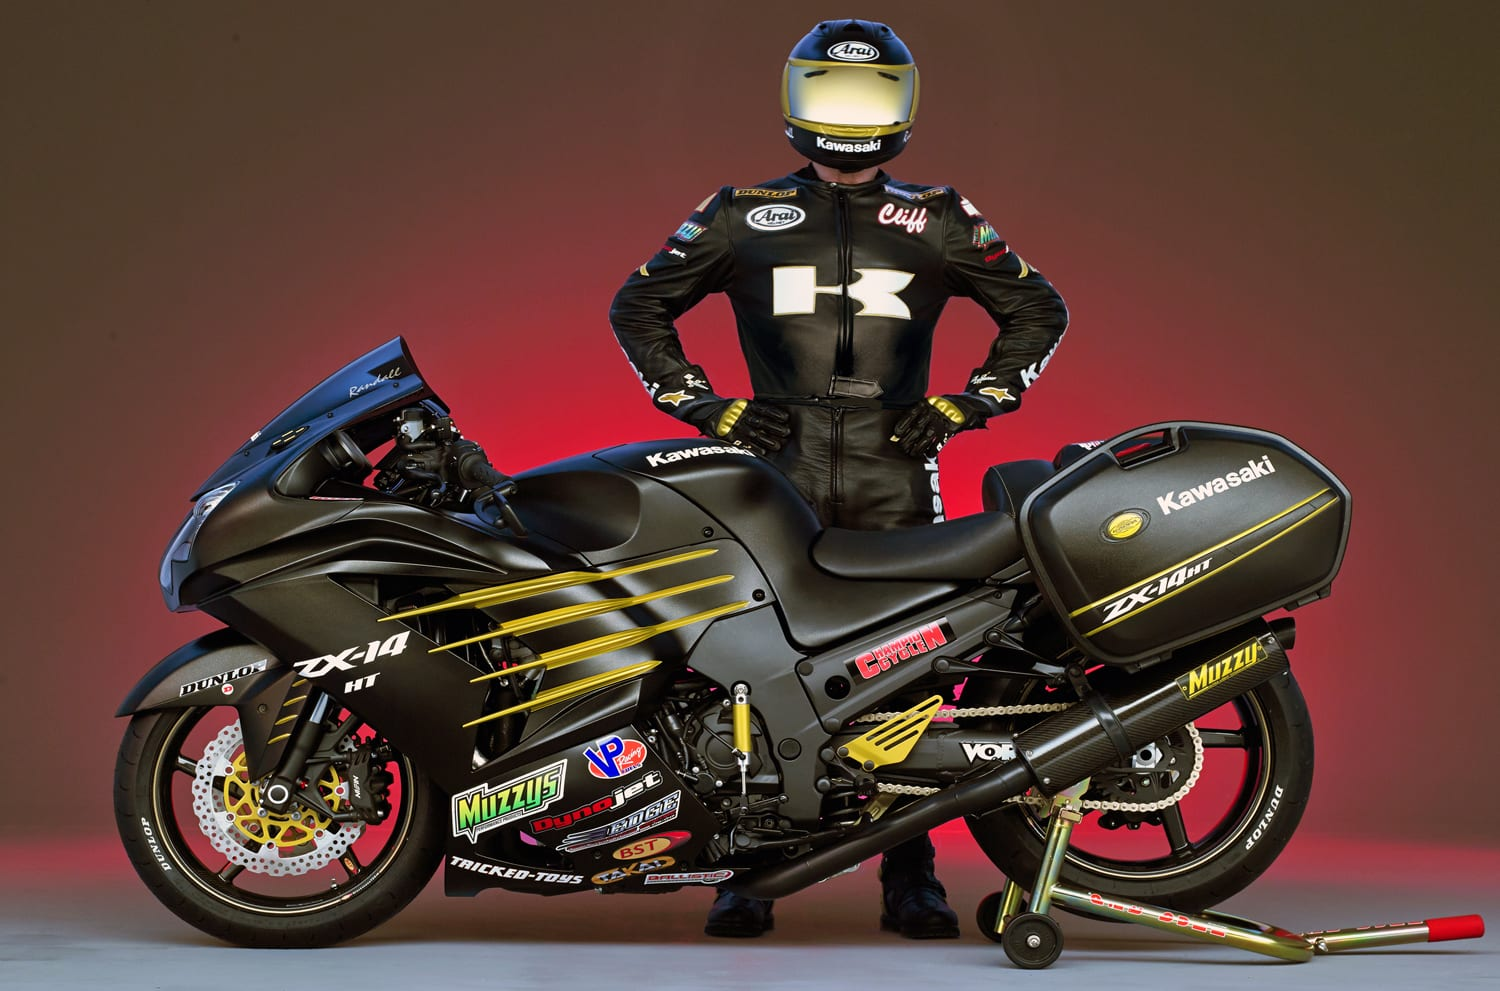 AT 140 MPH ON SNOW OR 200 MPH ON PAVEMENT, CLIFF RANDALL FUELS HIS PASSION WITH VP